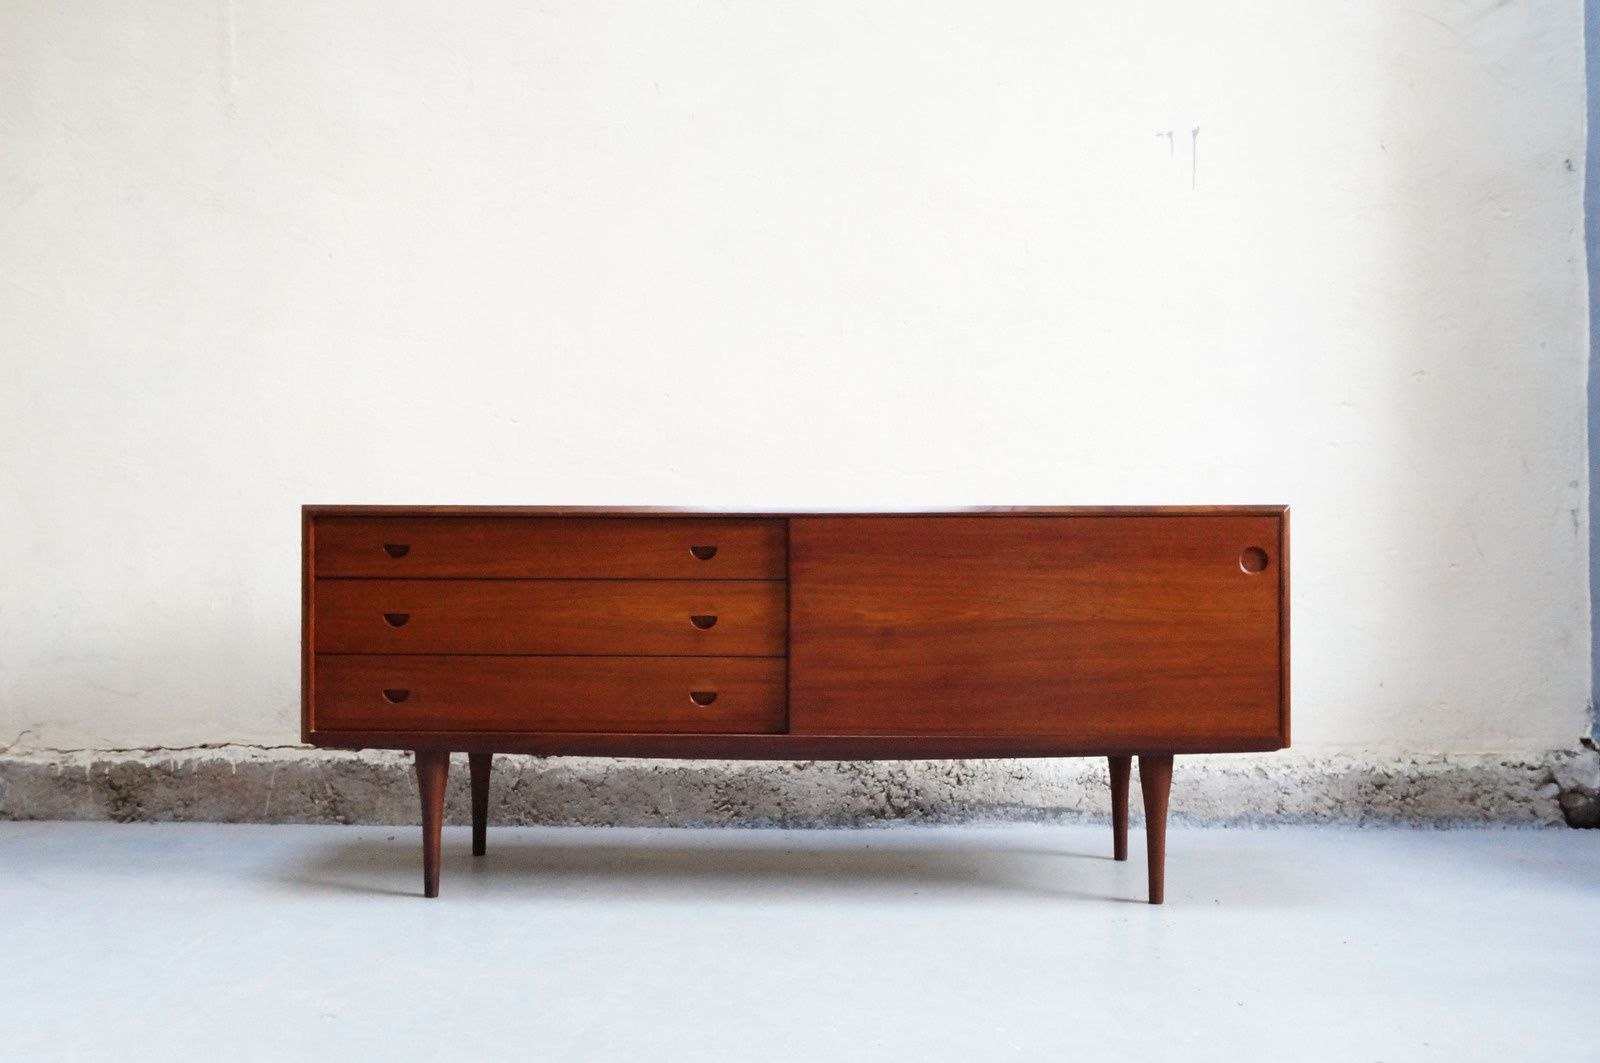 meubles design scandinave vintage